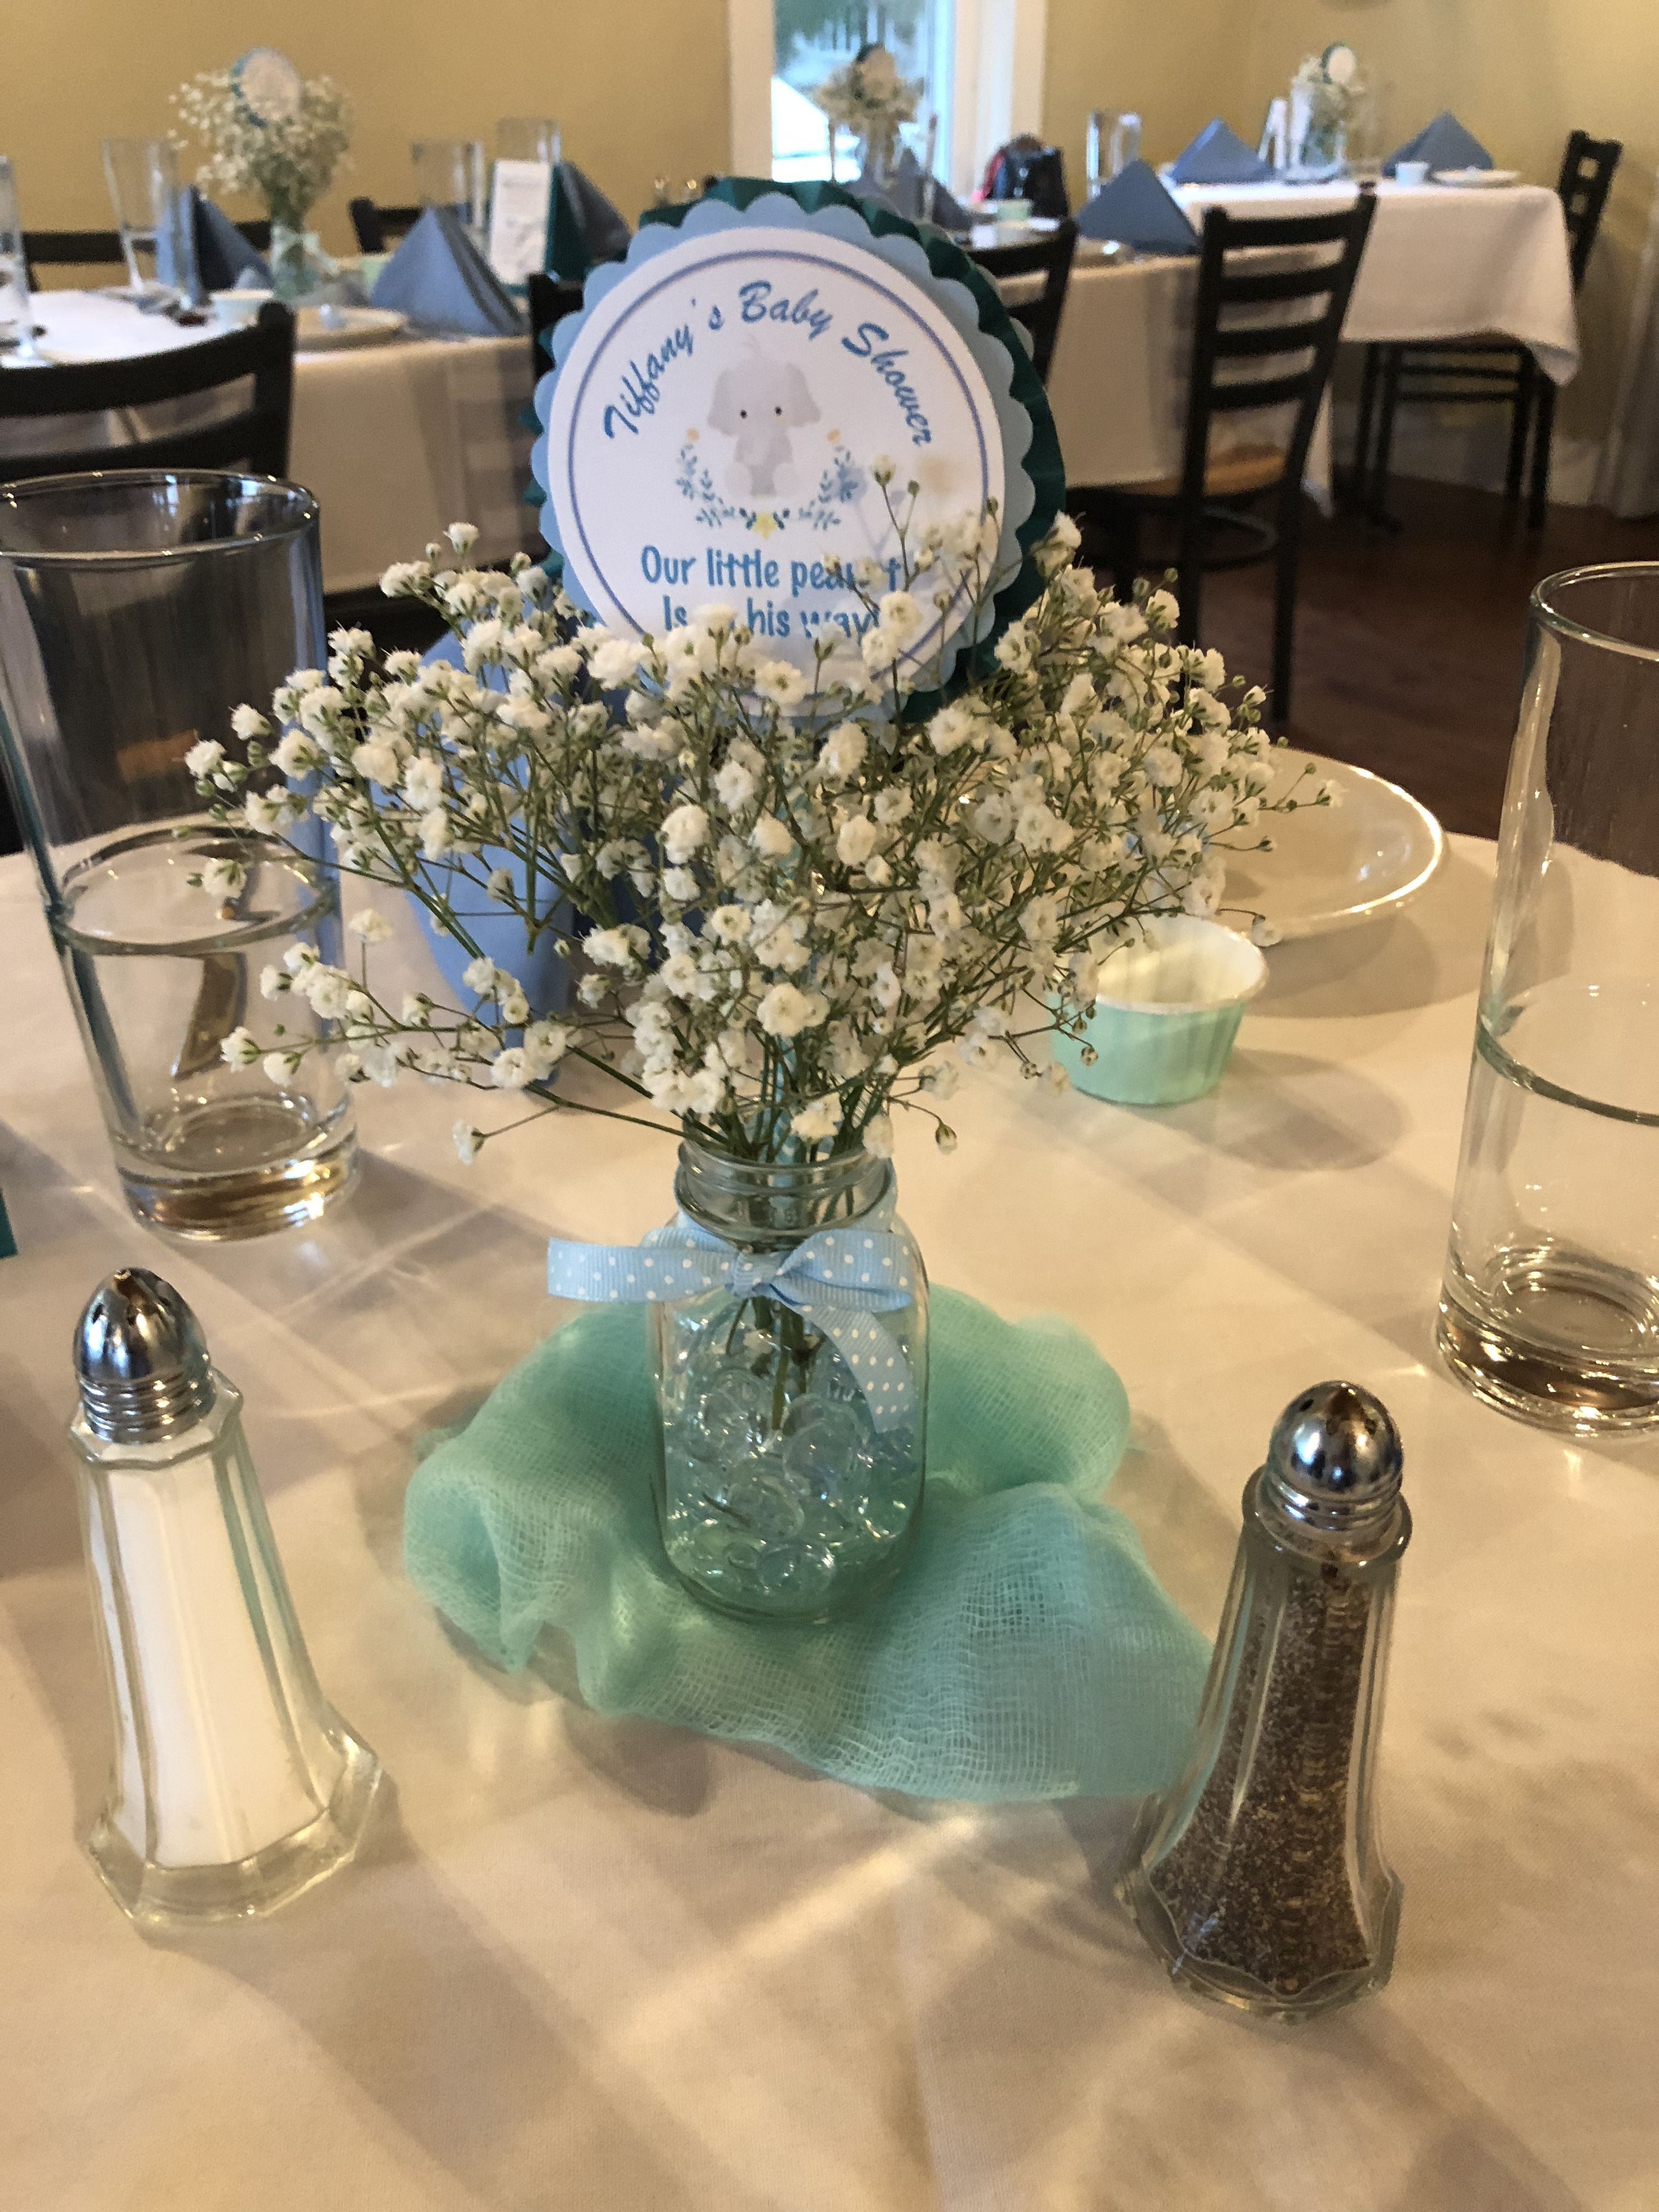 Baby Shower Centerpiece Using Vintage Glass Baby Bottle, Babies Breath